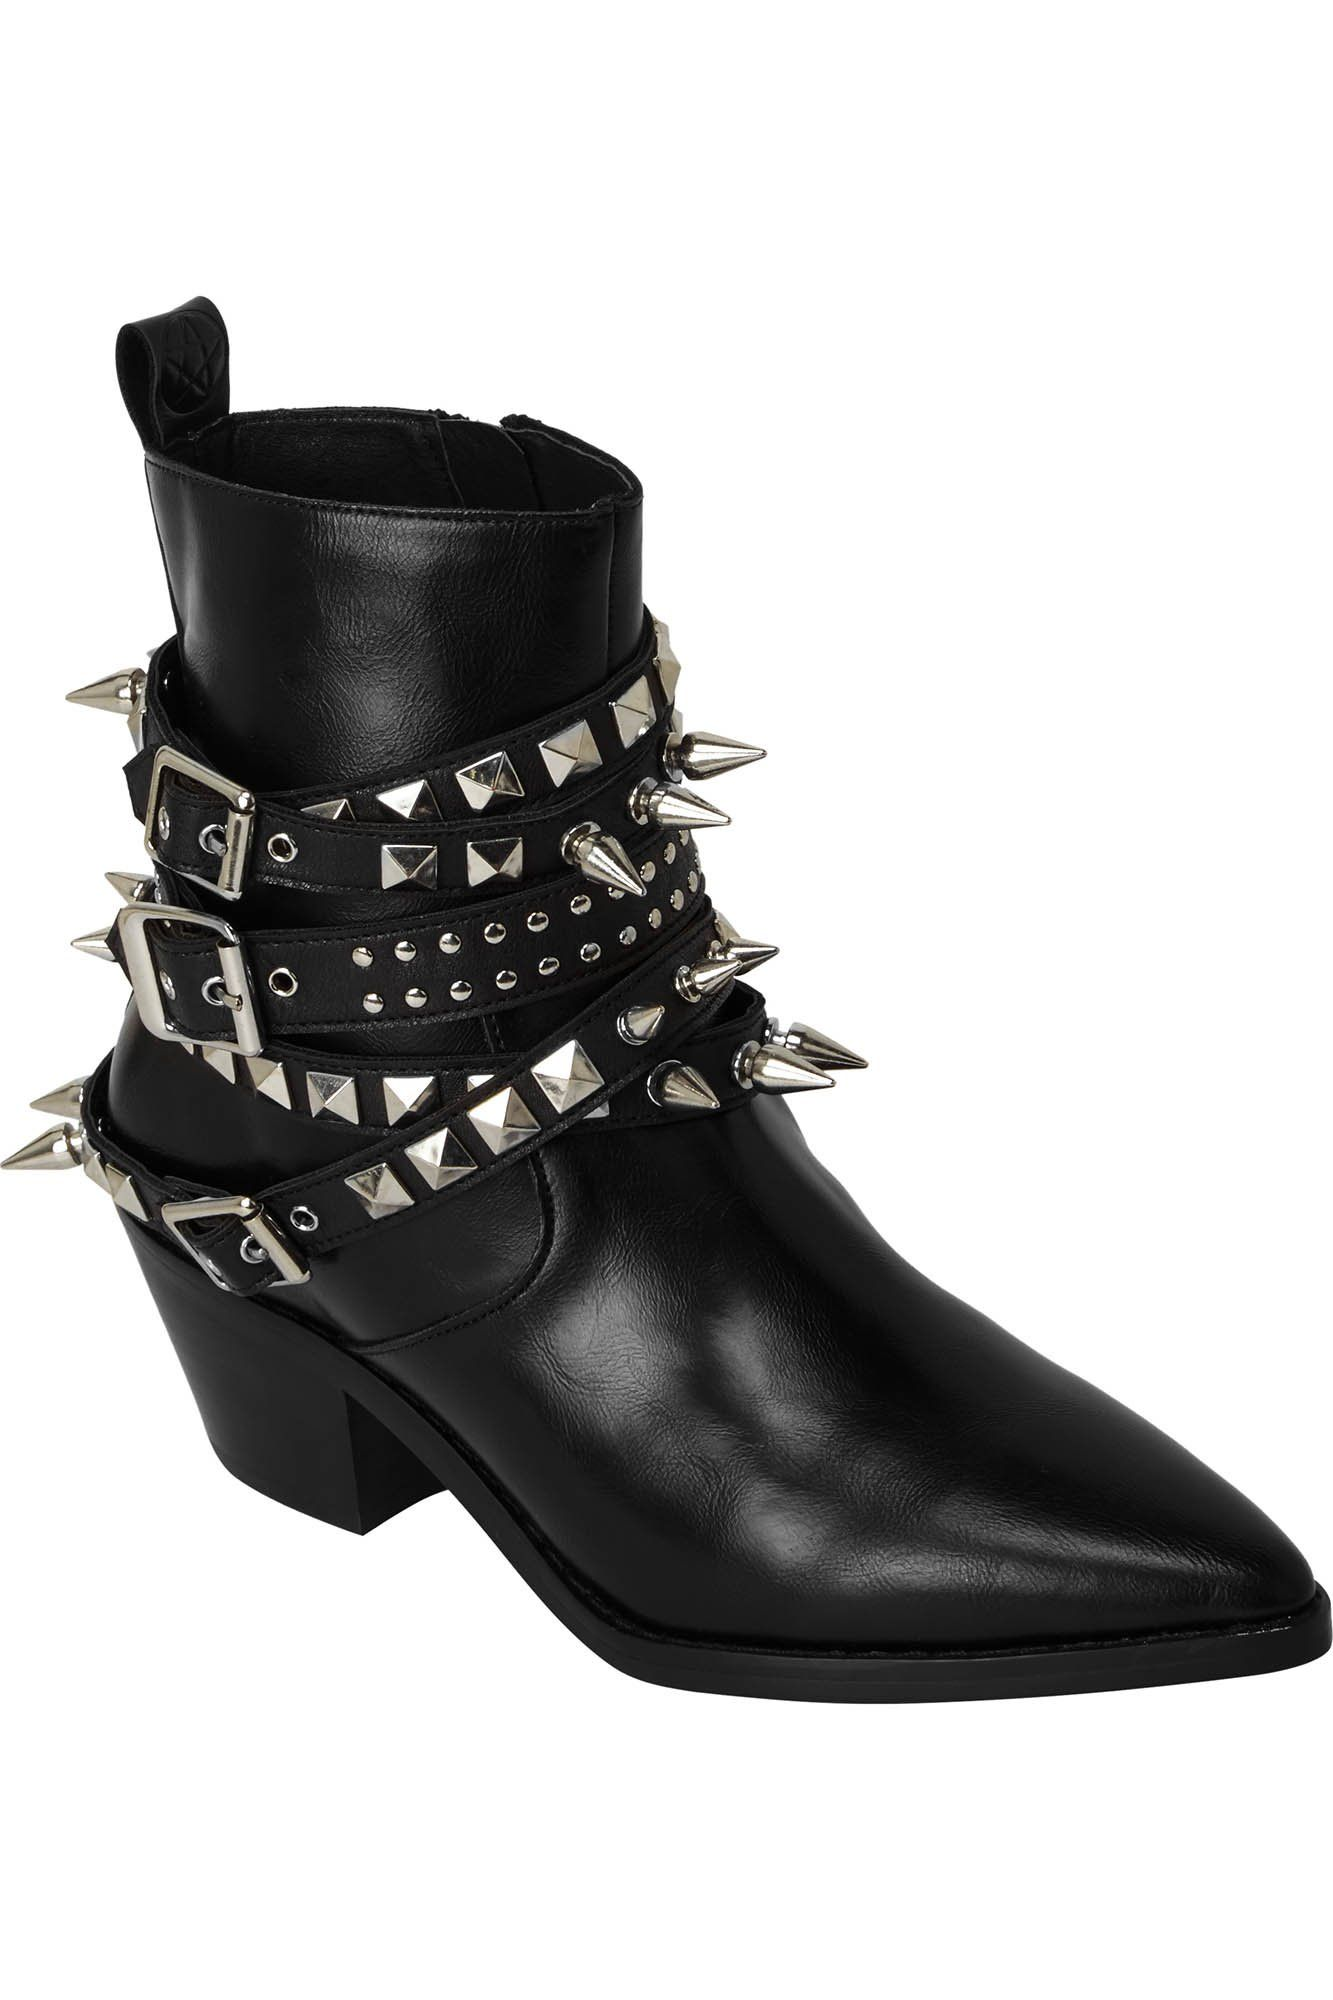 981318c0410b Callista Boots in 2019   killstar   Boots, Shoes, Heeled boots